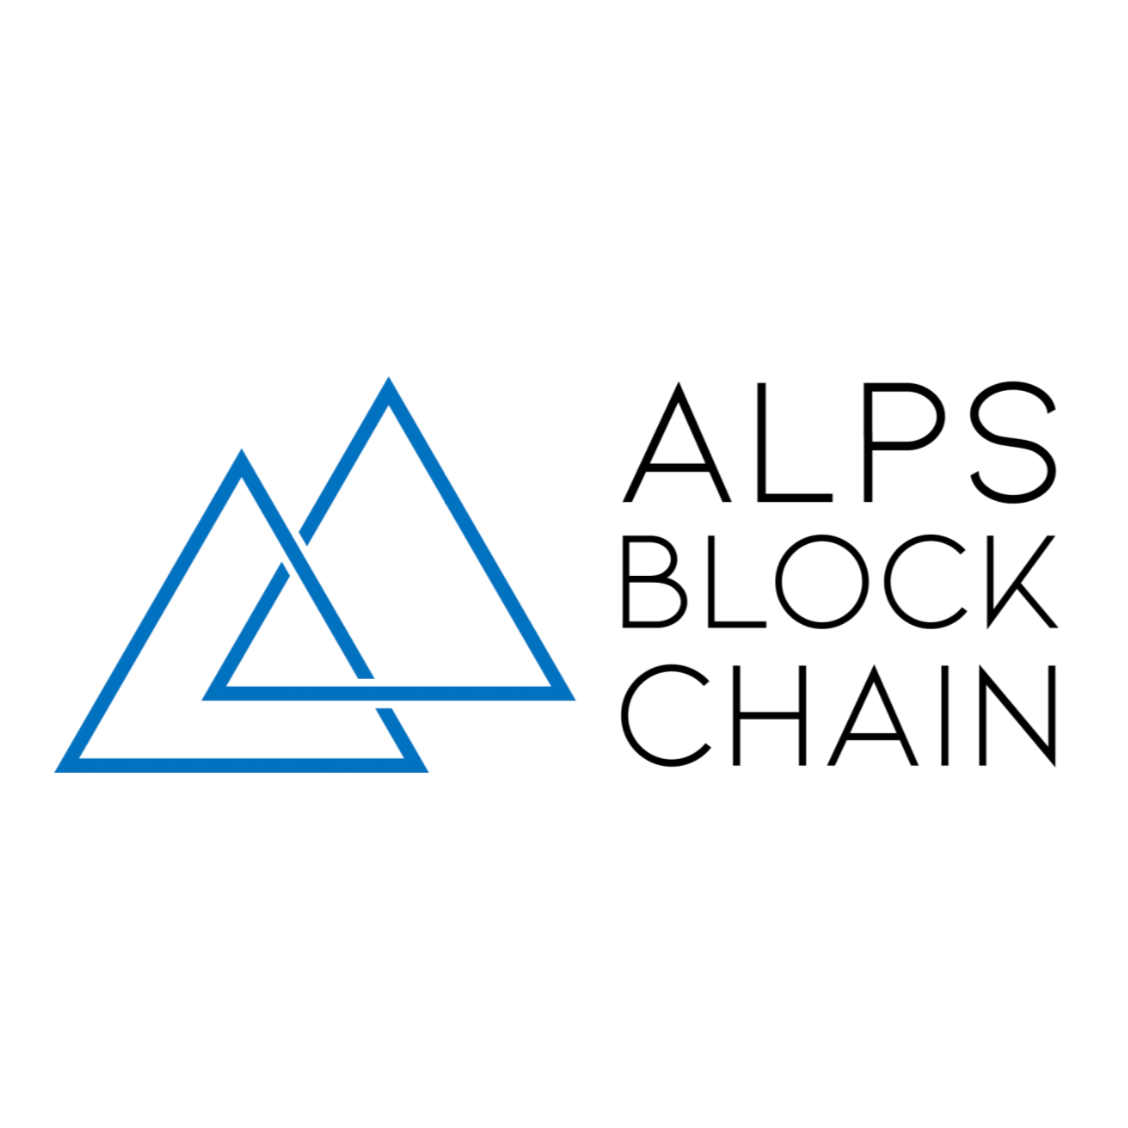 Alps Blockchain